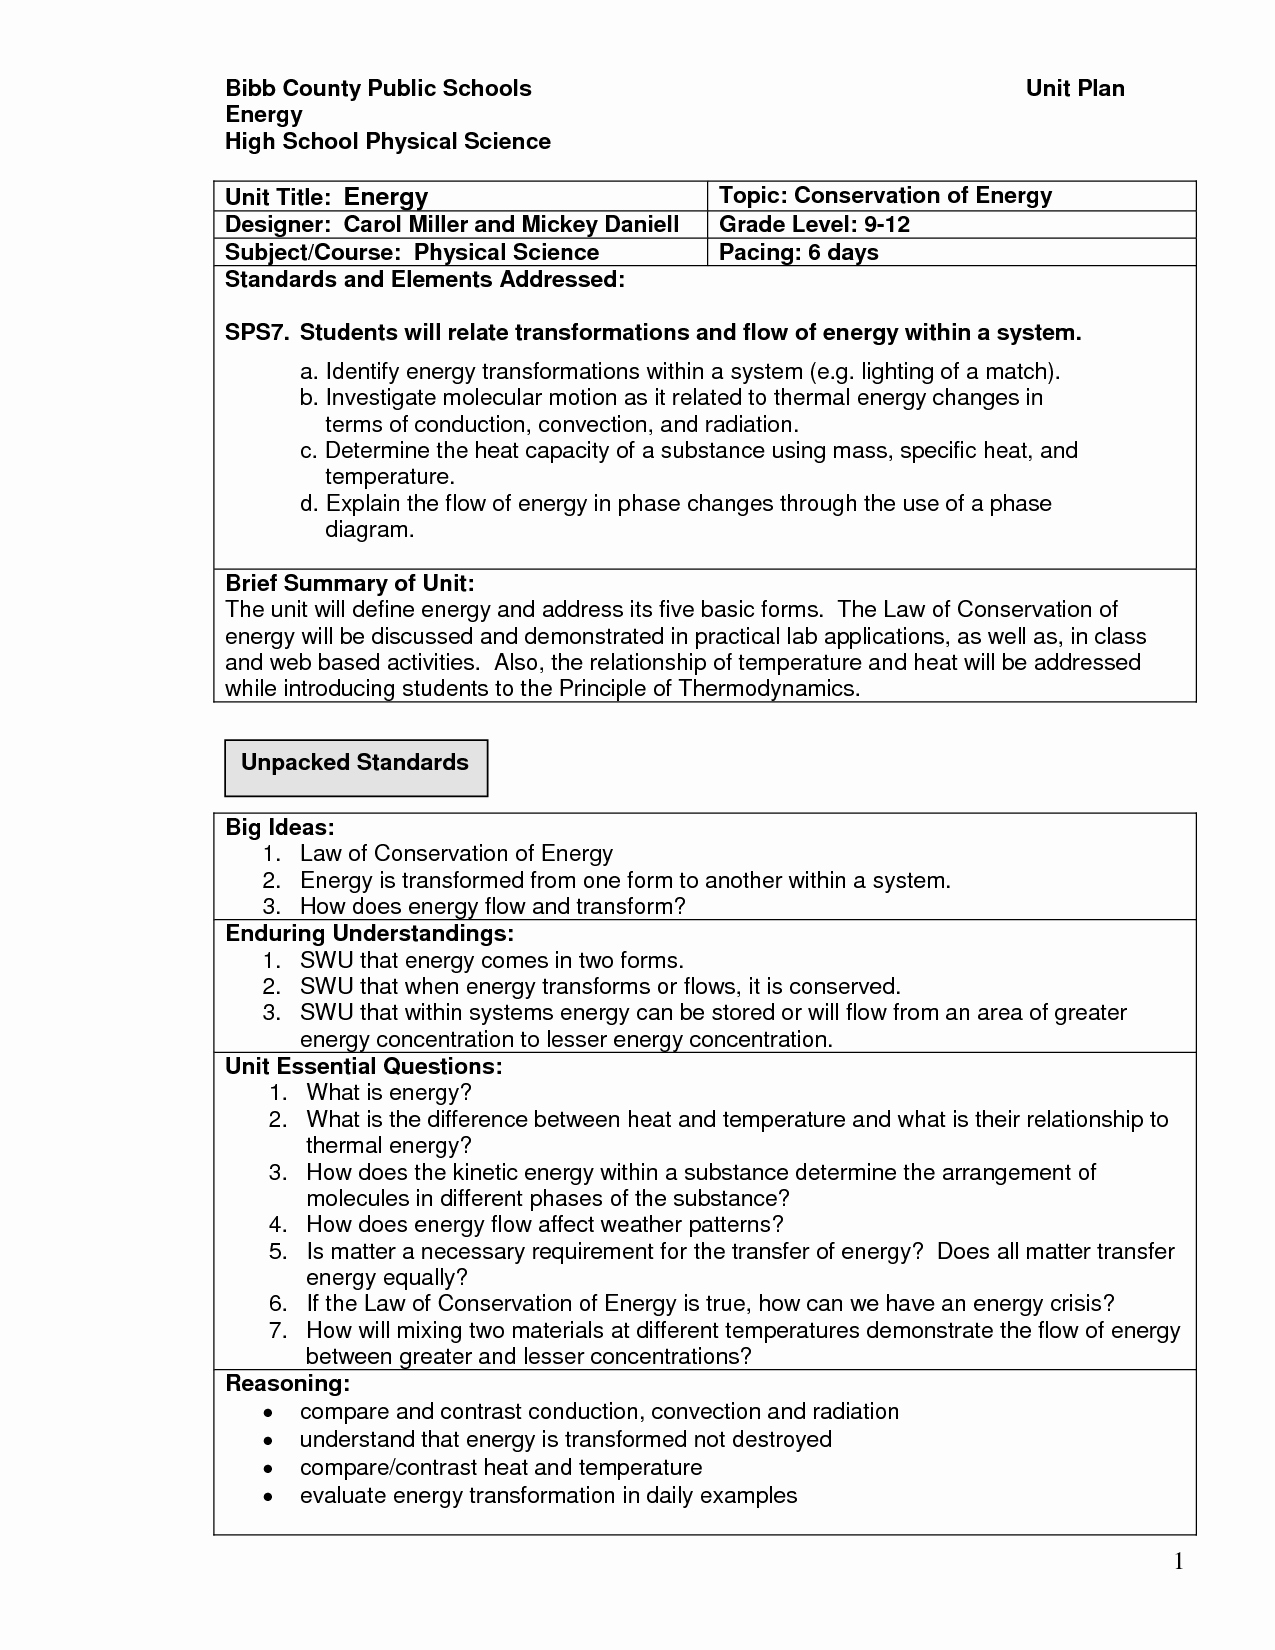 Conduction Convection Radiation Worksheet Best Of 16 Best Of Conduction Convection and Worksheets